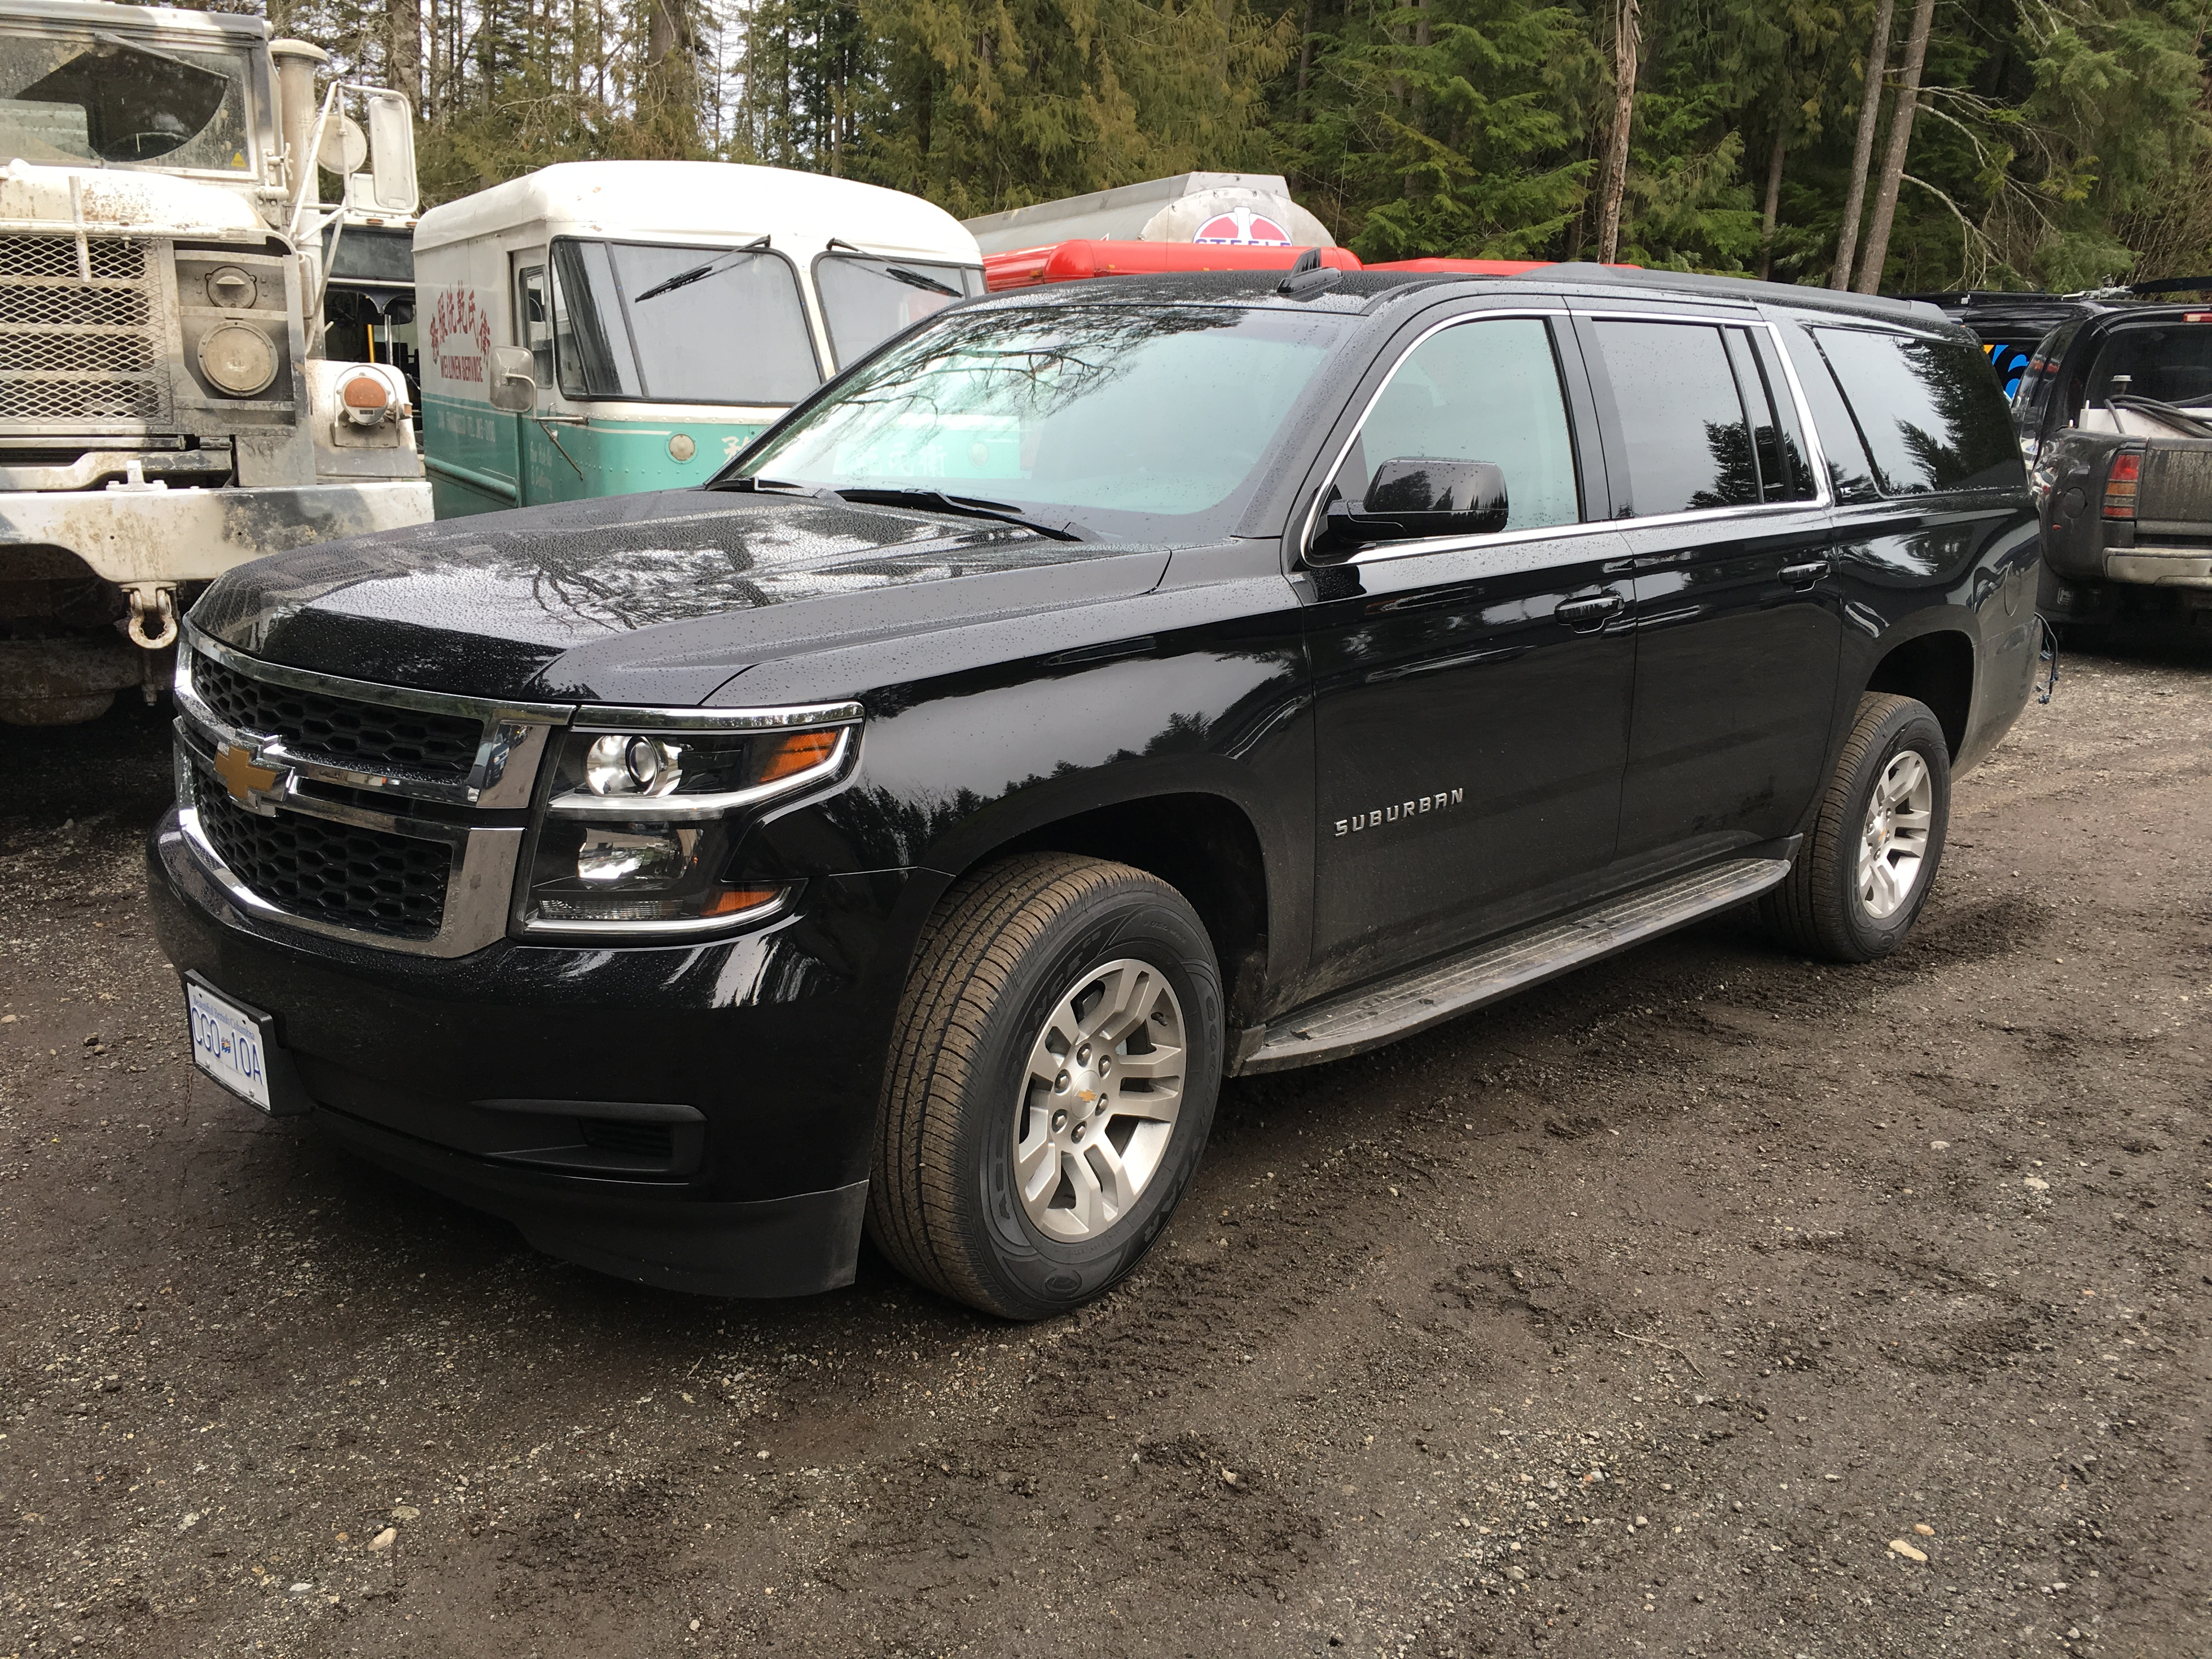 2016 Suburban SUV Police Two Available